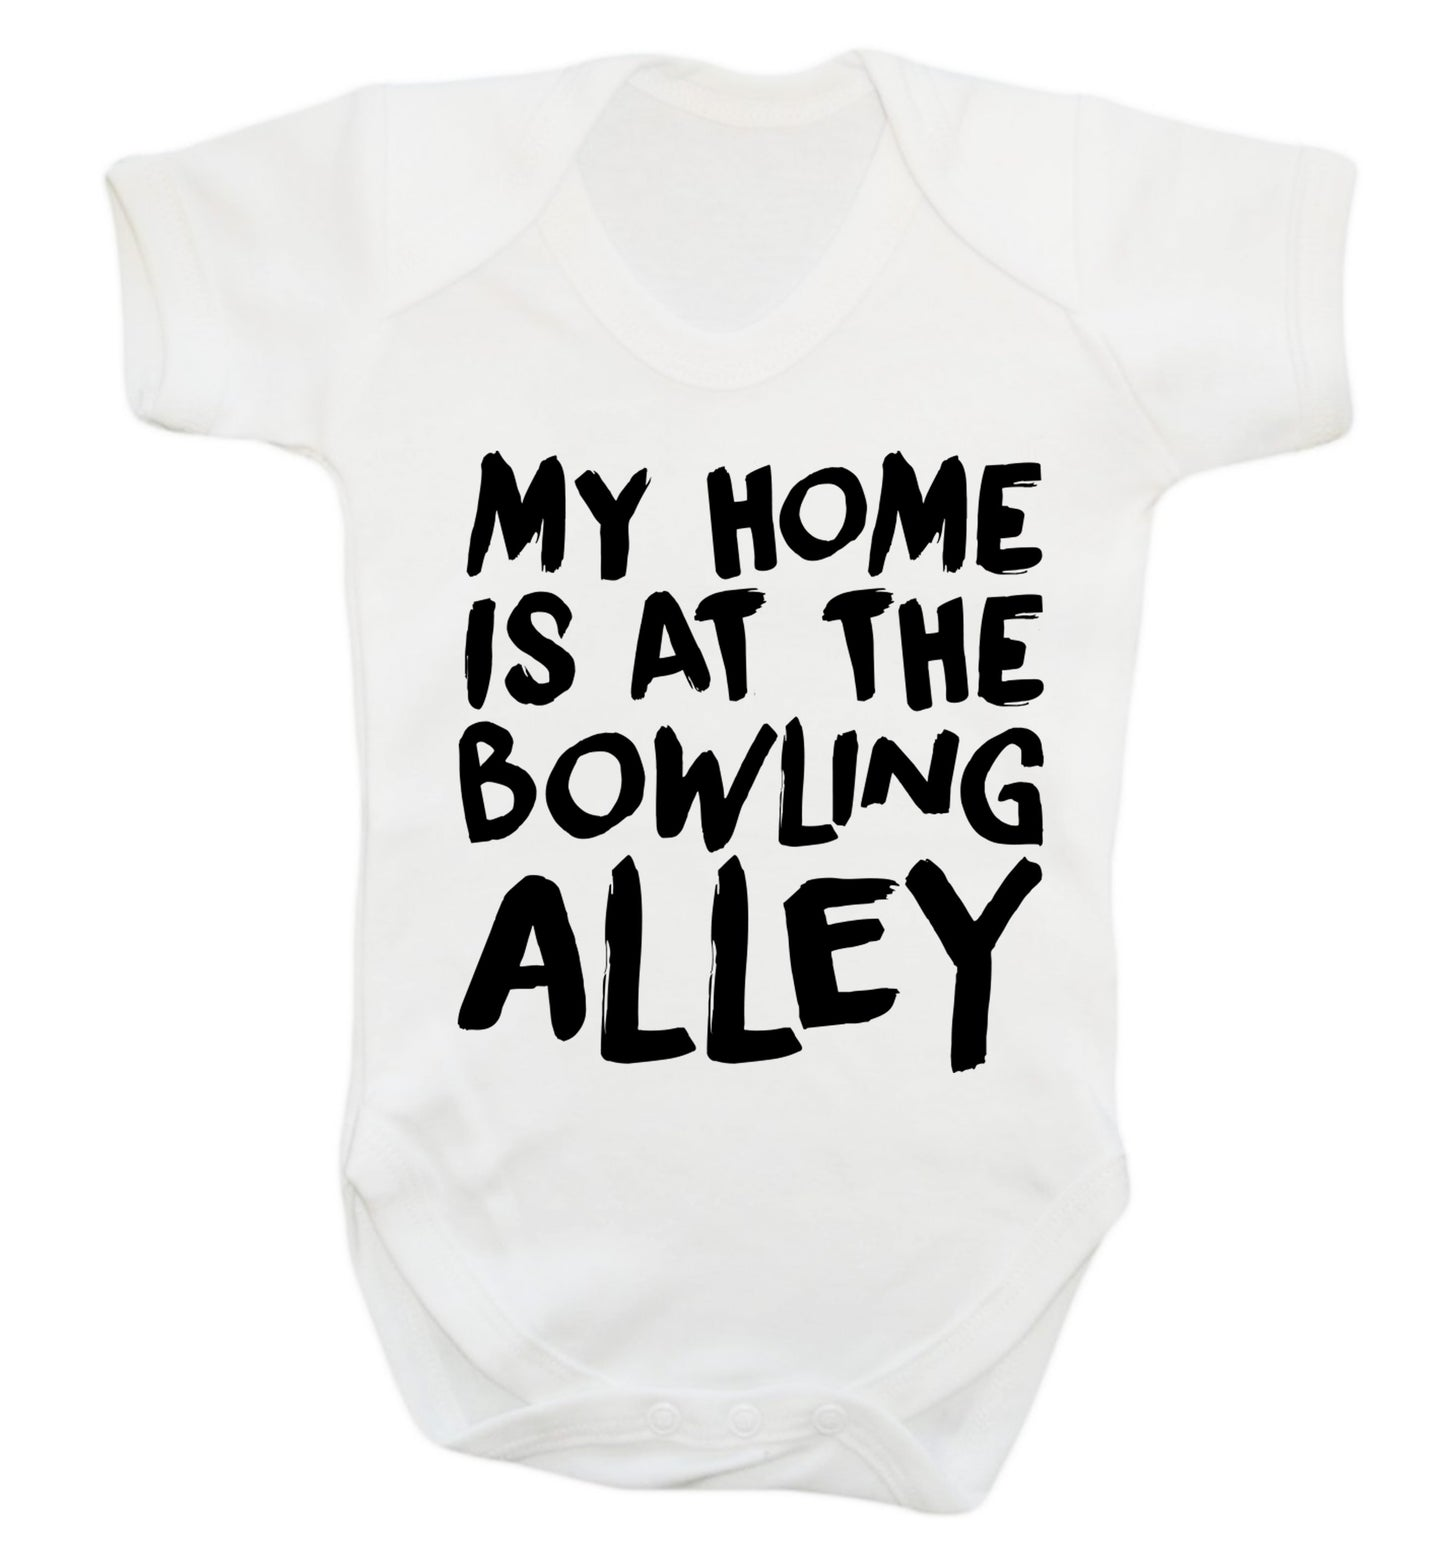 My home is at the bowling alley Baby Vest white 18-24 months